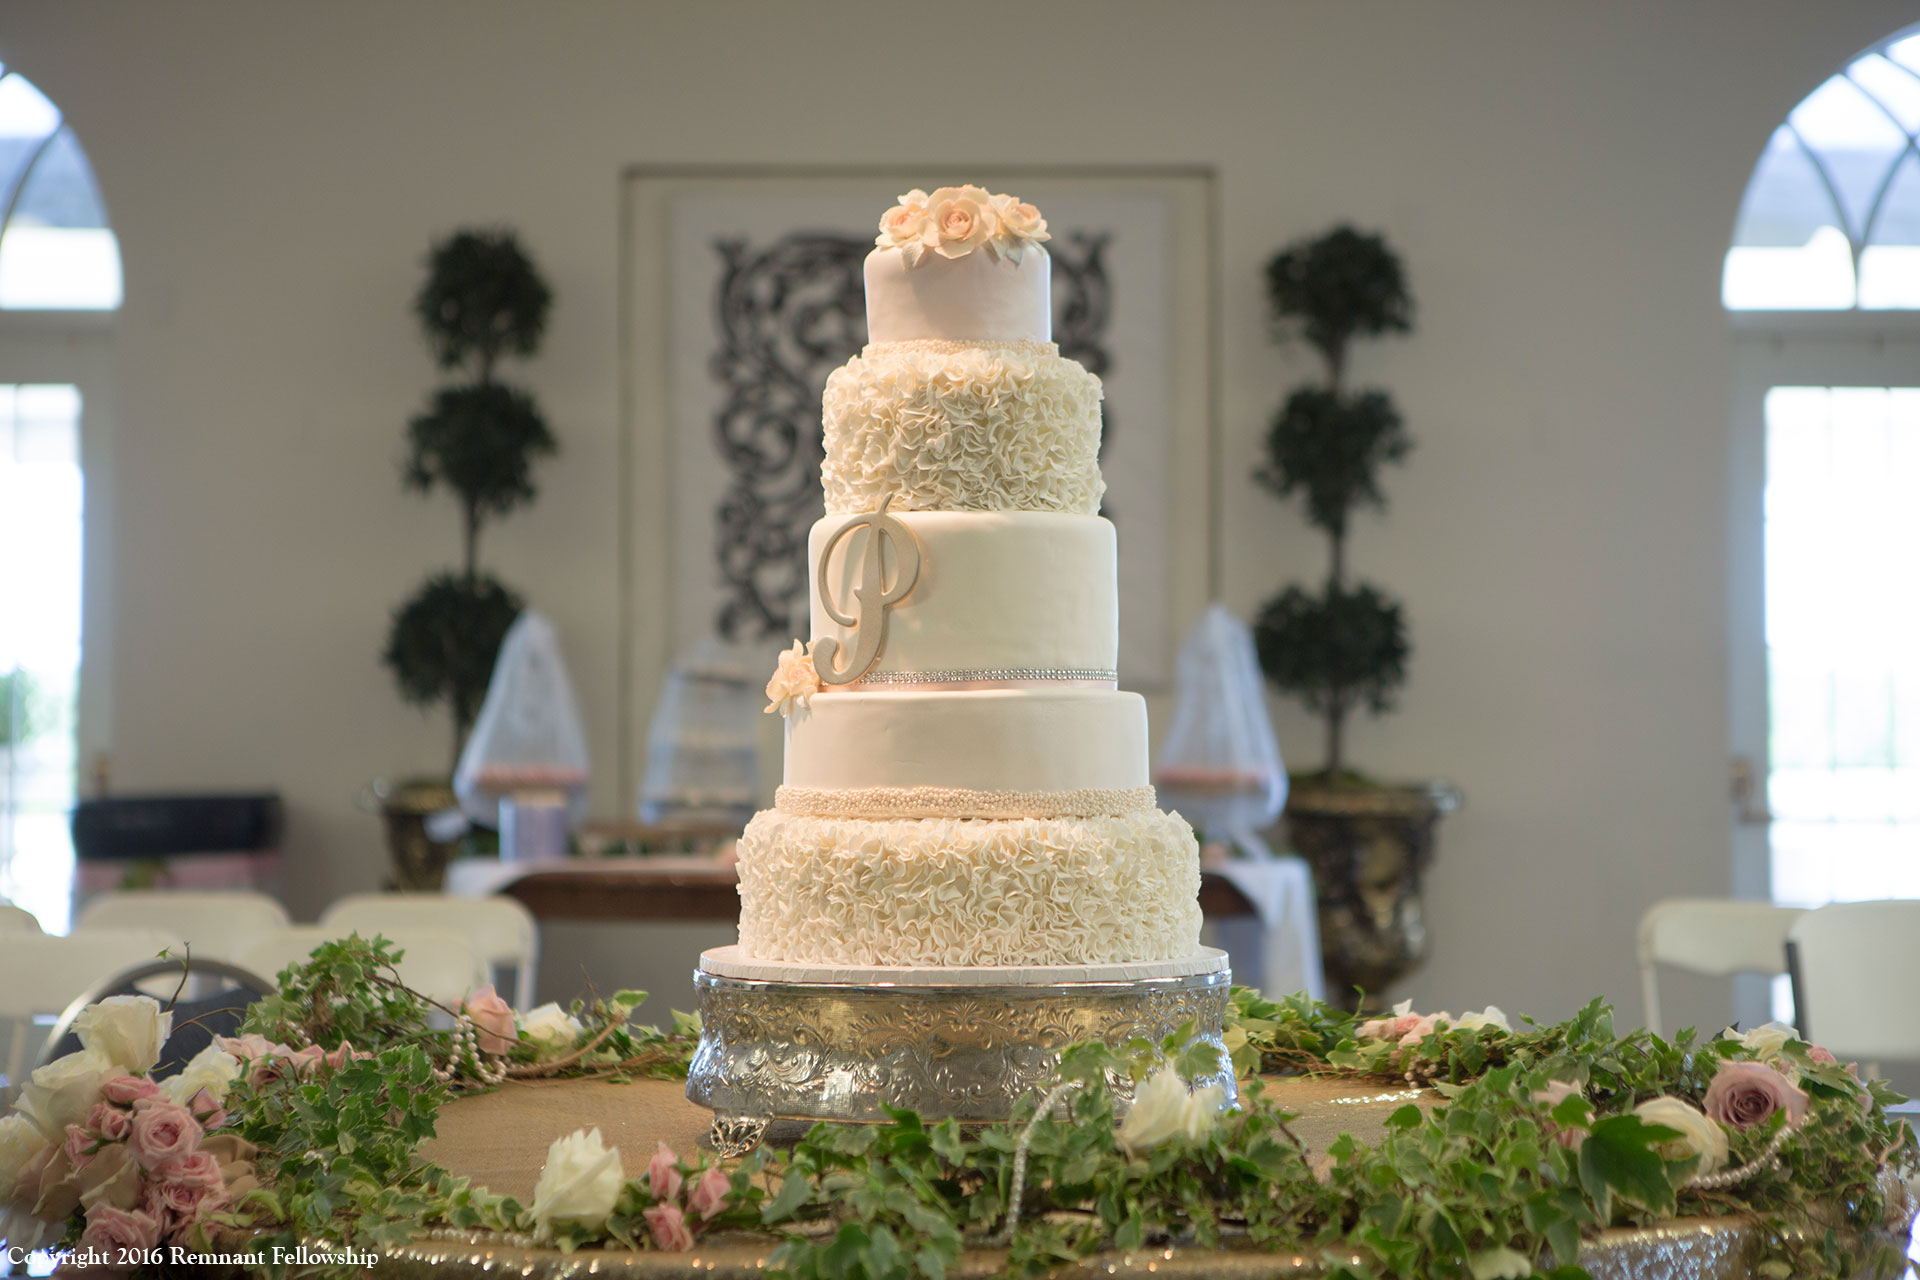 Remnant-Fellowship-Wedding-Peters-Sroda-Cake